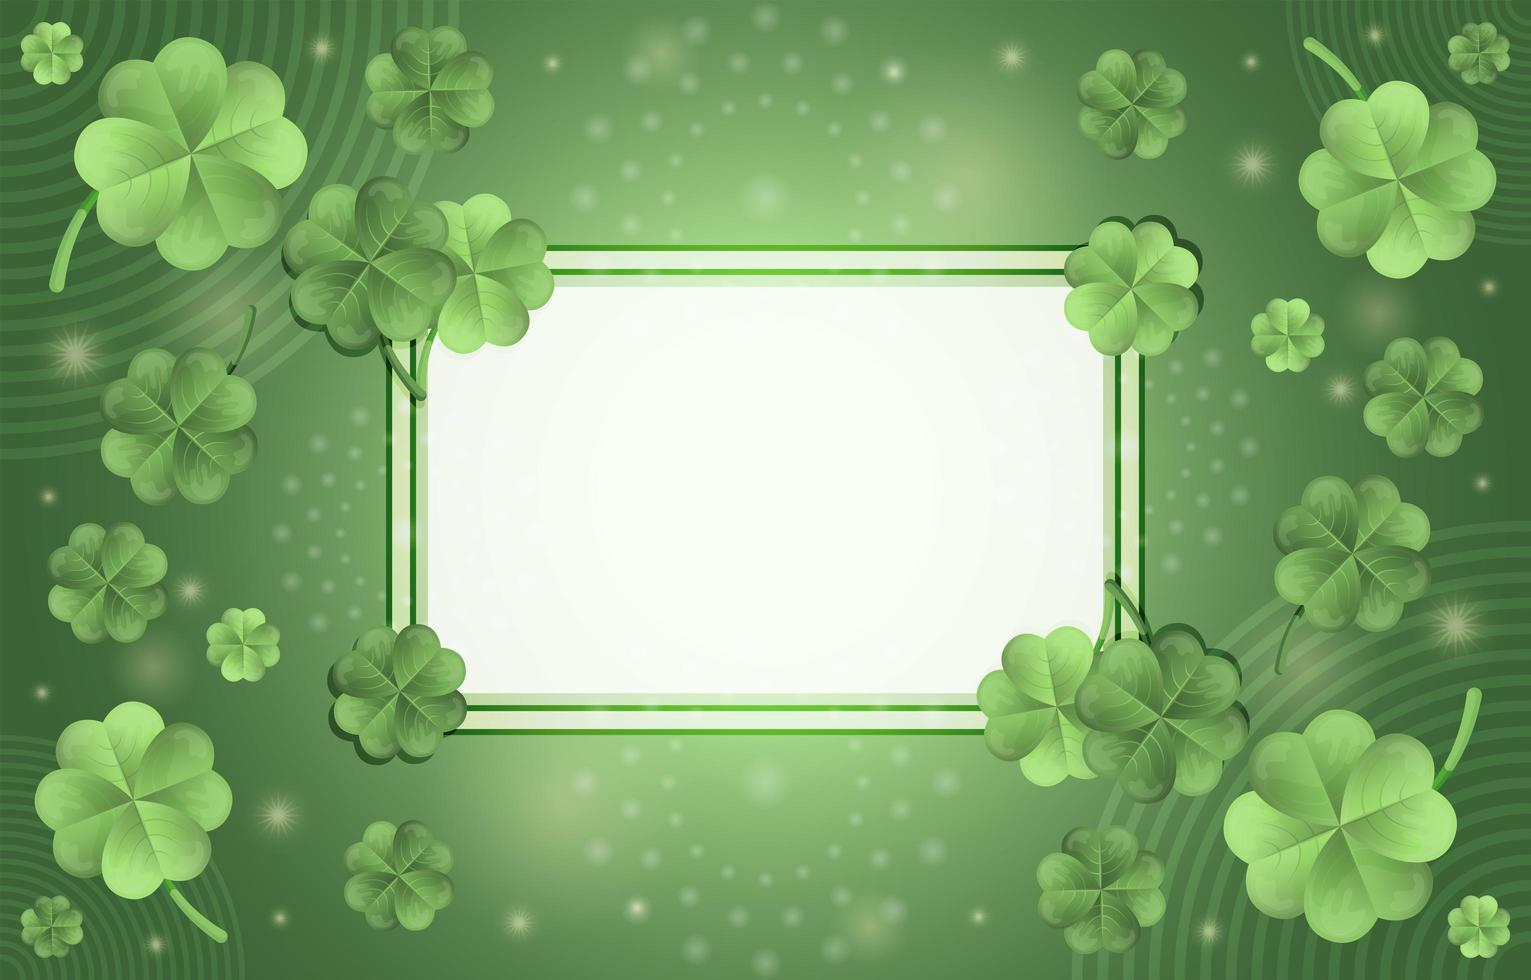 Elegant Gradient Green Clover Concept with Frame vector